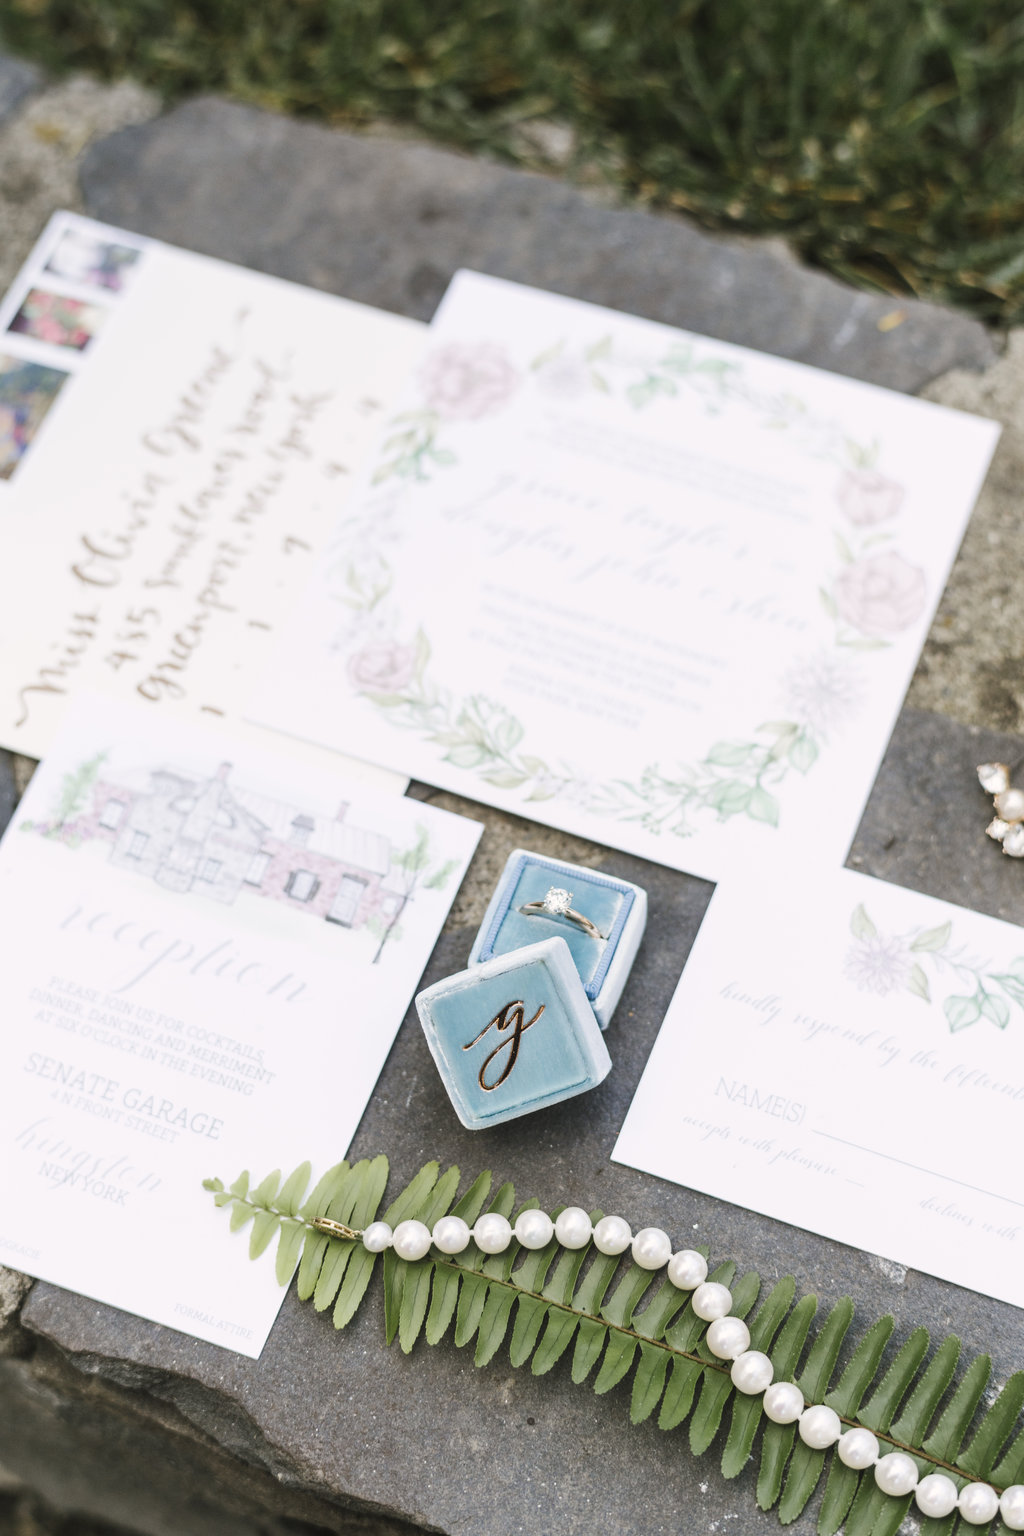 Coppola Creative Wedding Design _ Alicia King Photo17.jpg